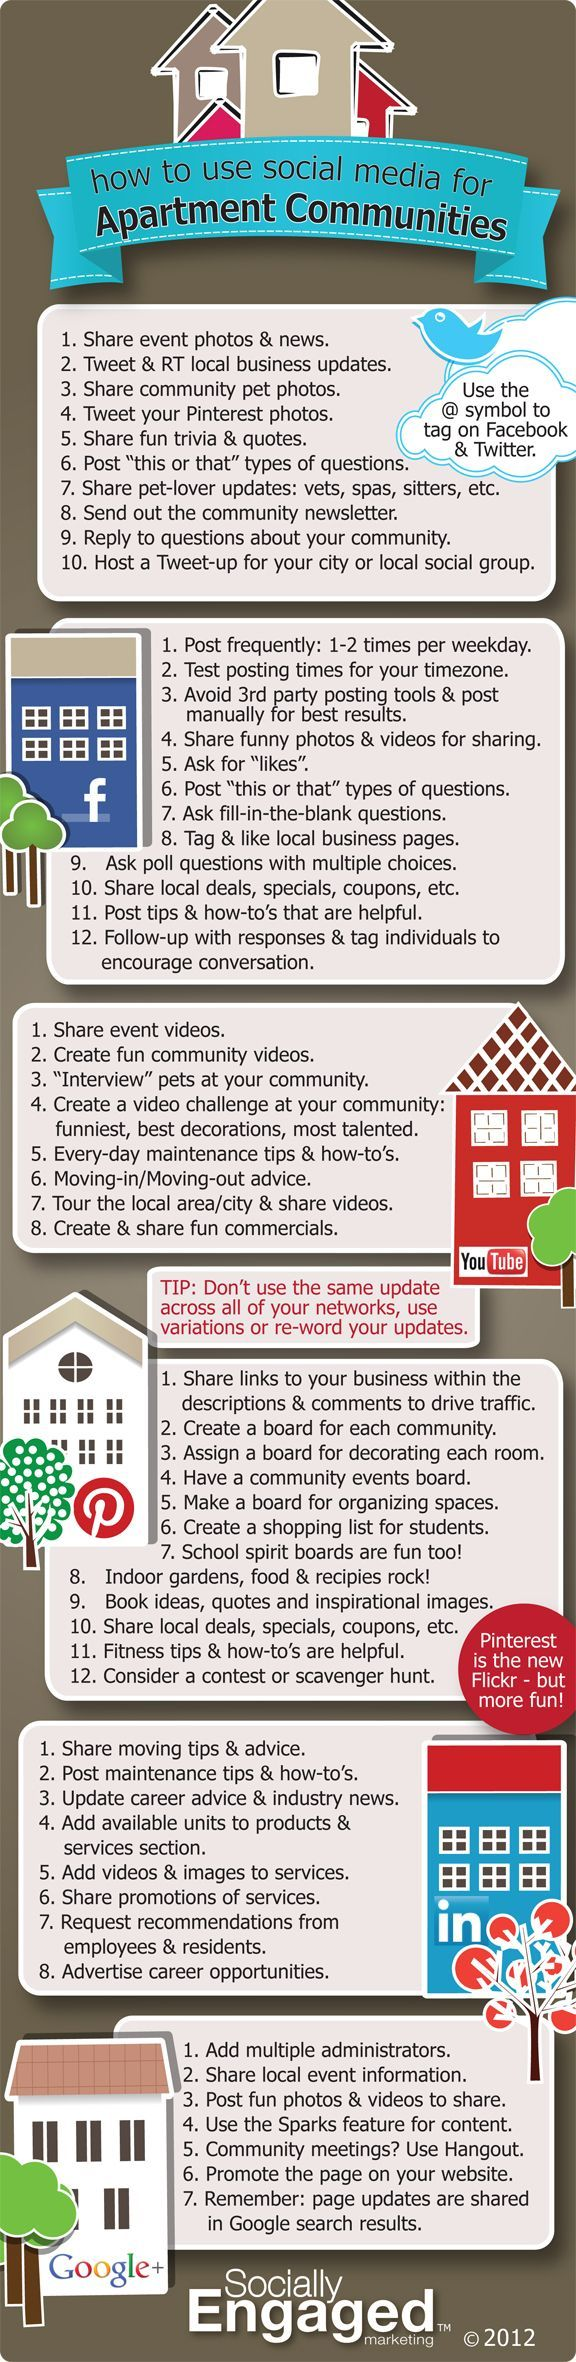 How To Use Social Media For Apartment Communities - Infographic (hey, I know the creator on this one...hello Charity Hisle at Socially Engaged Marketing!)